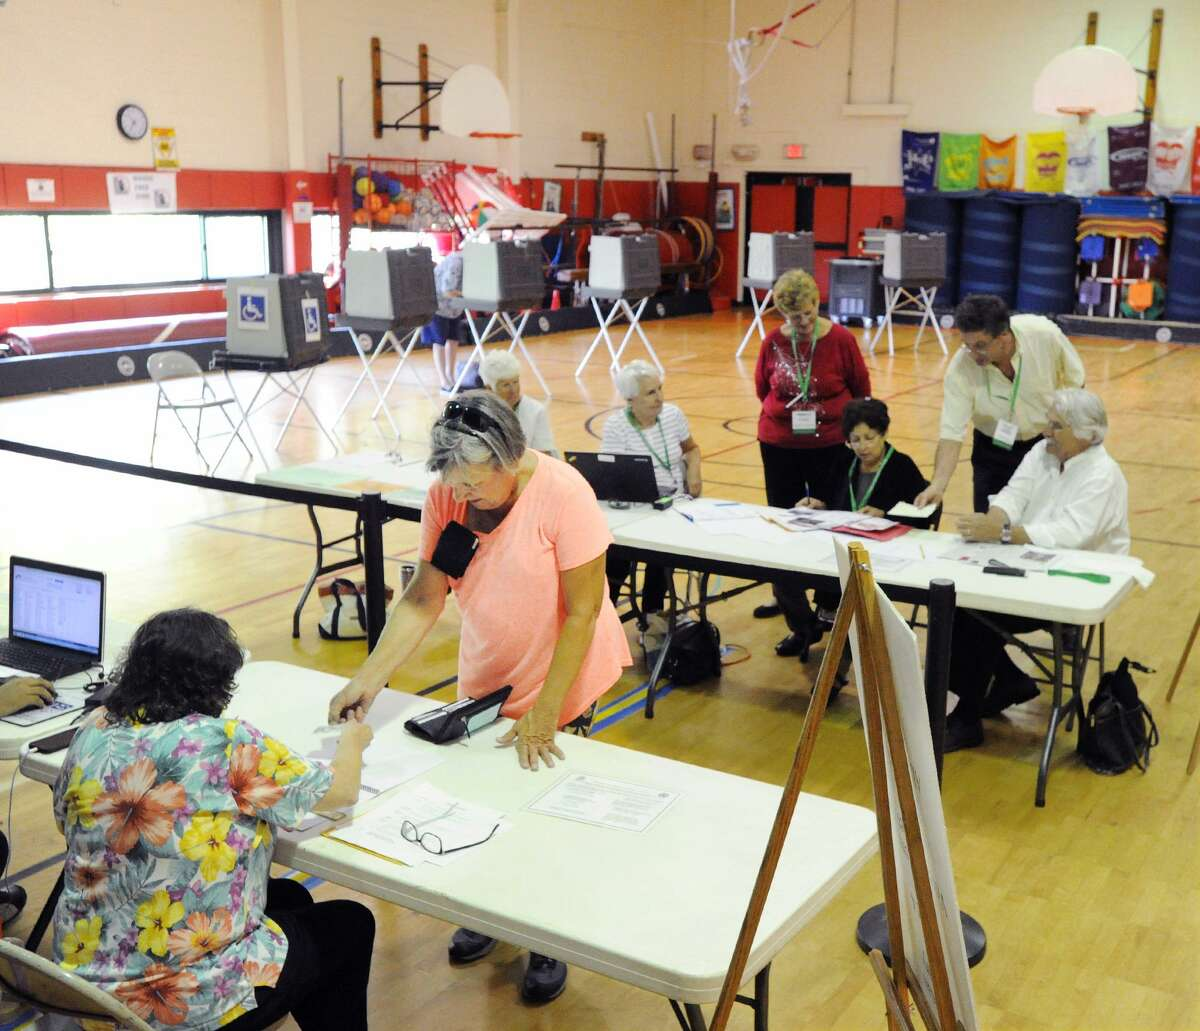 Ann Riley of Greenwich, bottom left, shows her identification before voting during the state primary elections at the New Lebanon School in Greenwich.